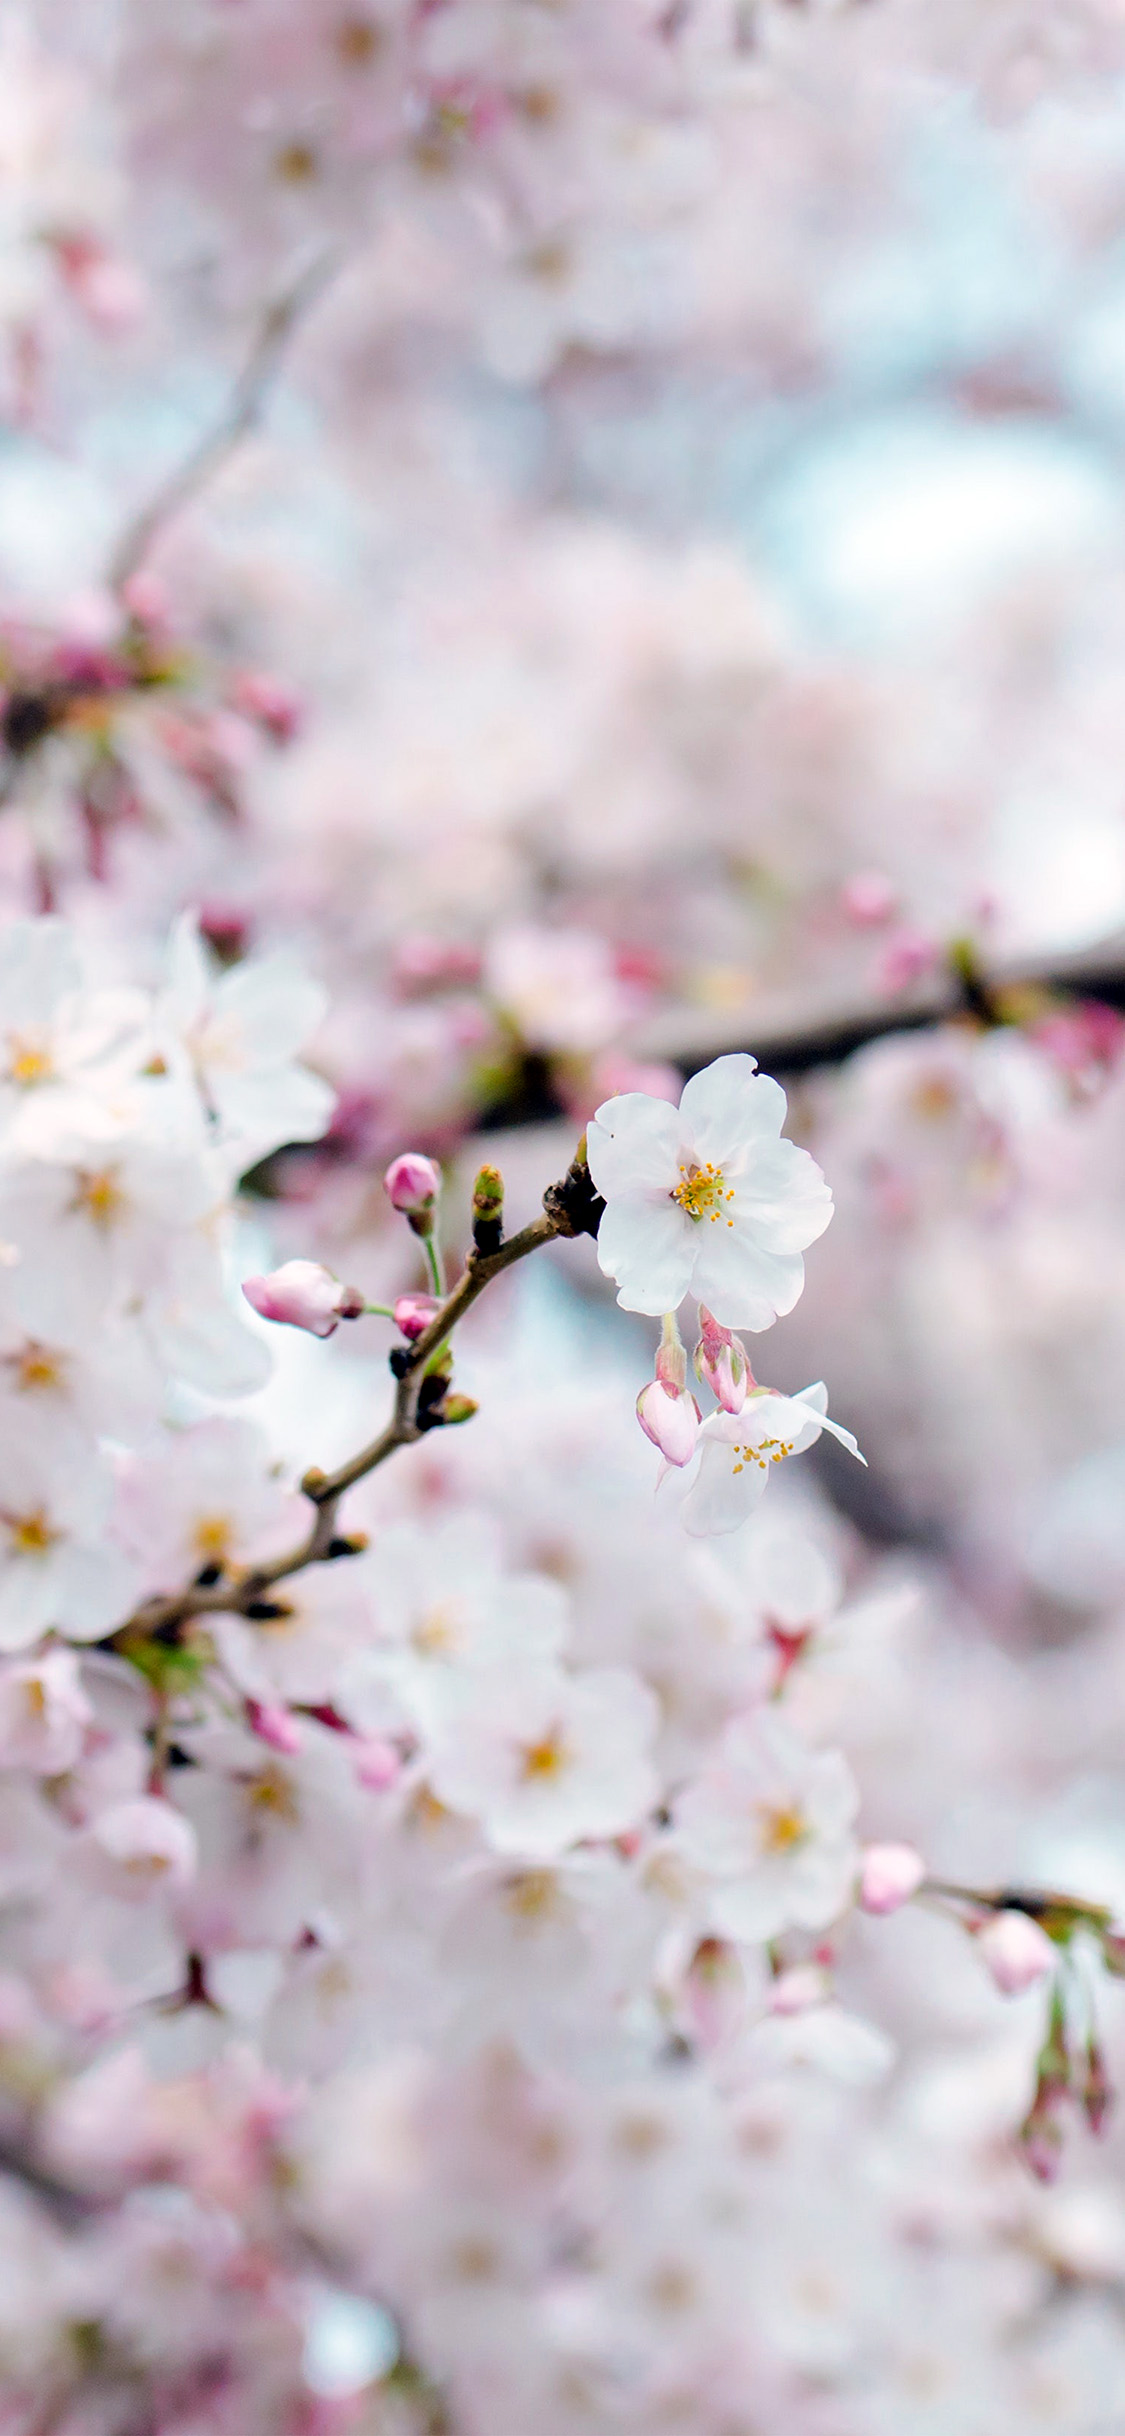 iPhonexpapers.com-Apple-iPhone-wallpaper-nx70-cherry-blossom-flower-spring-tree-bokeh-nature